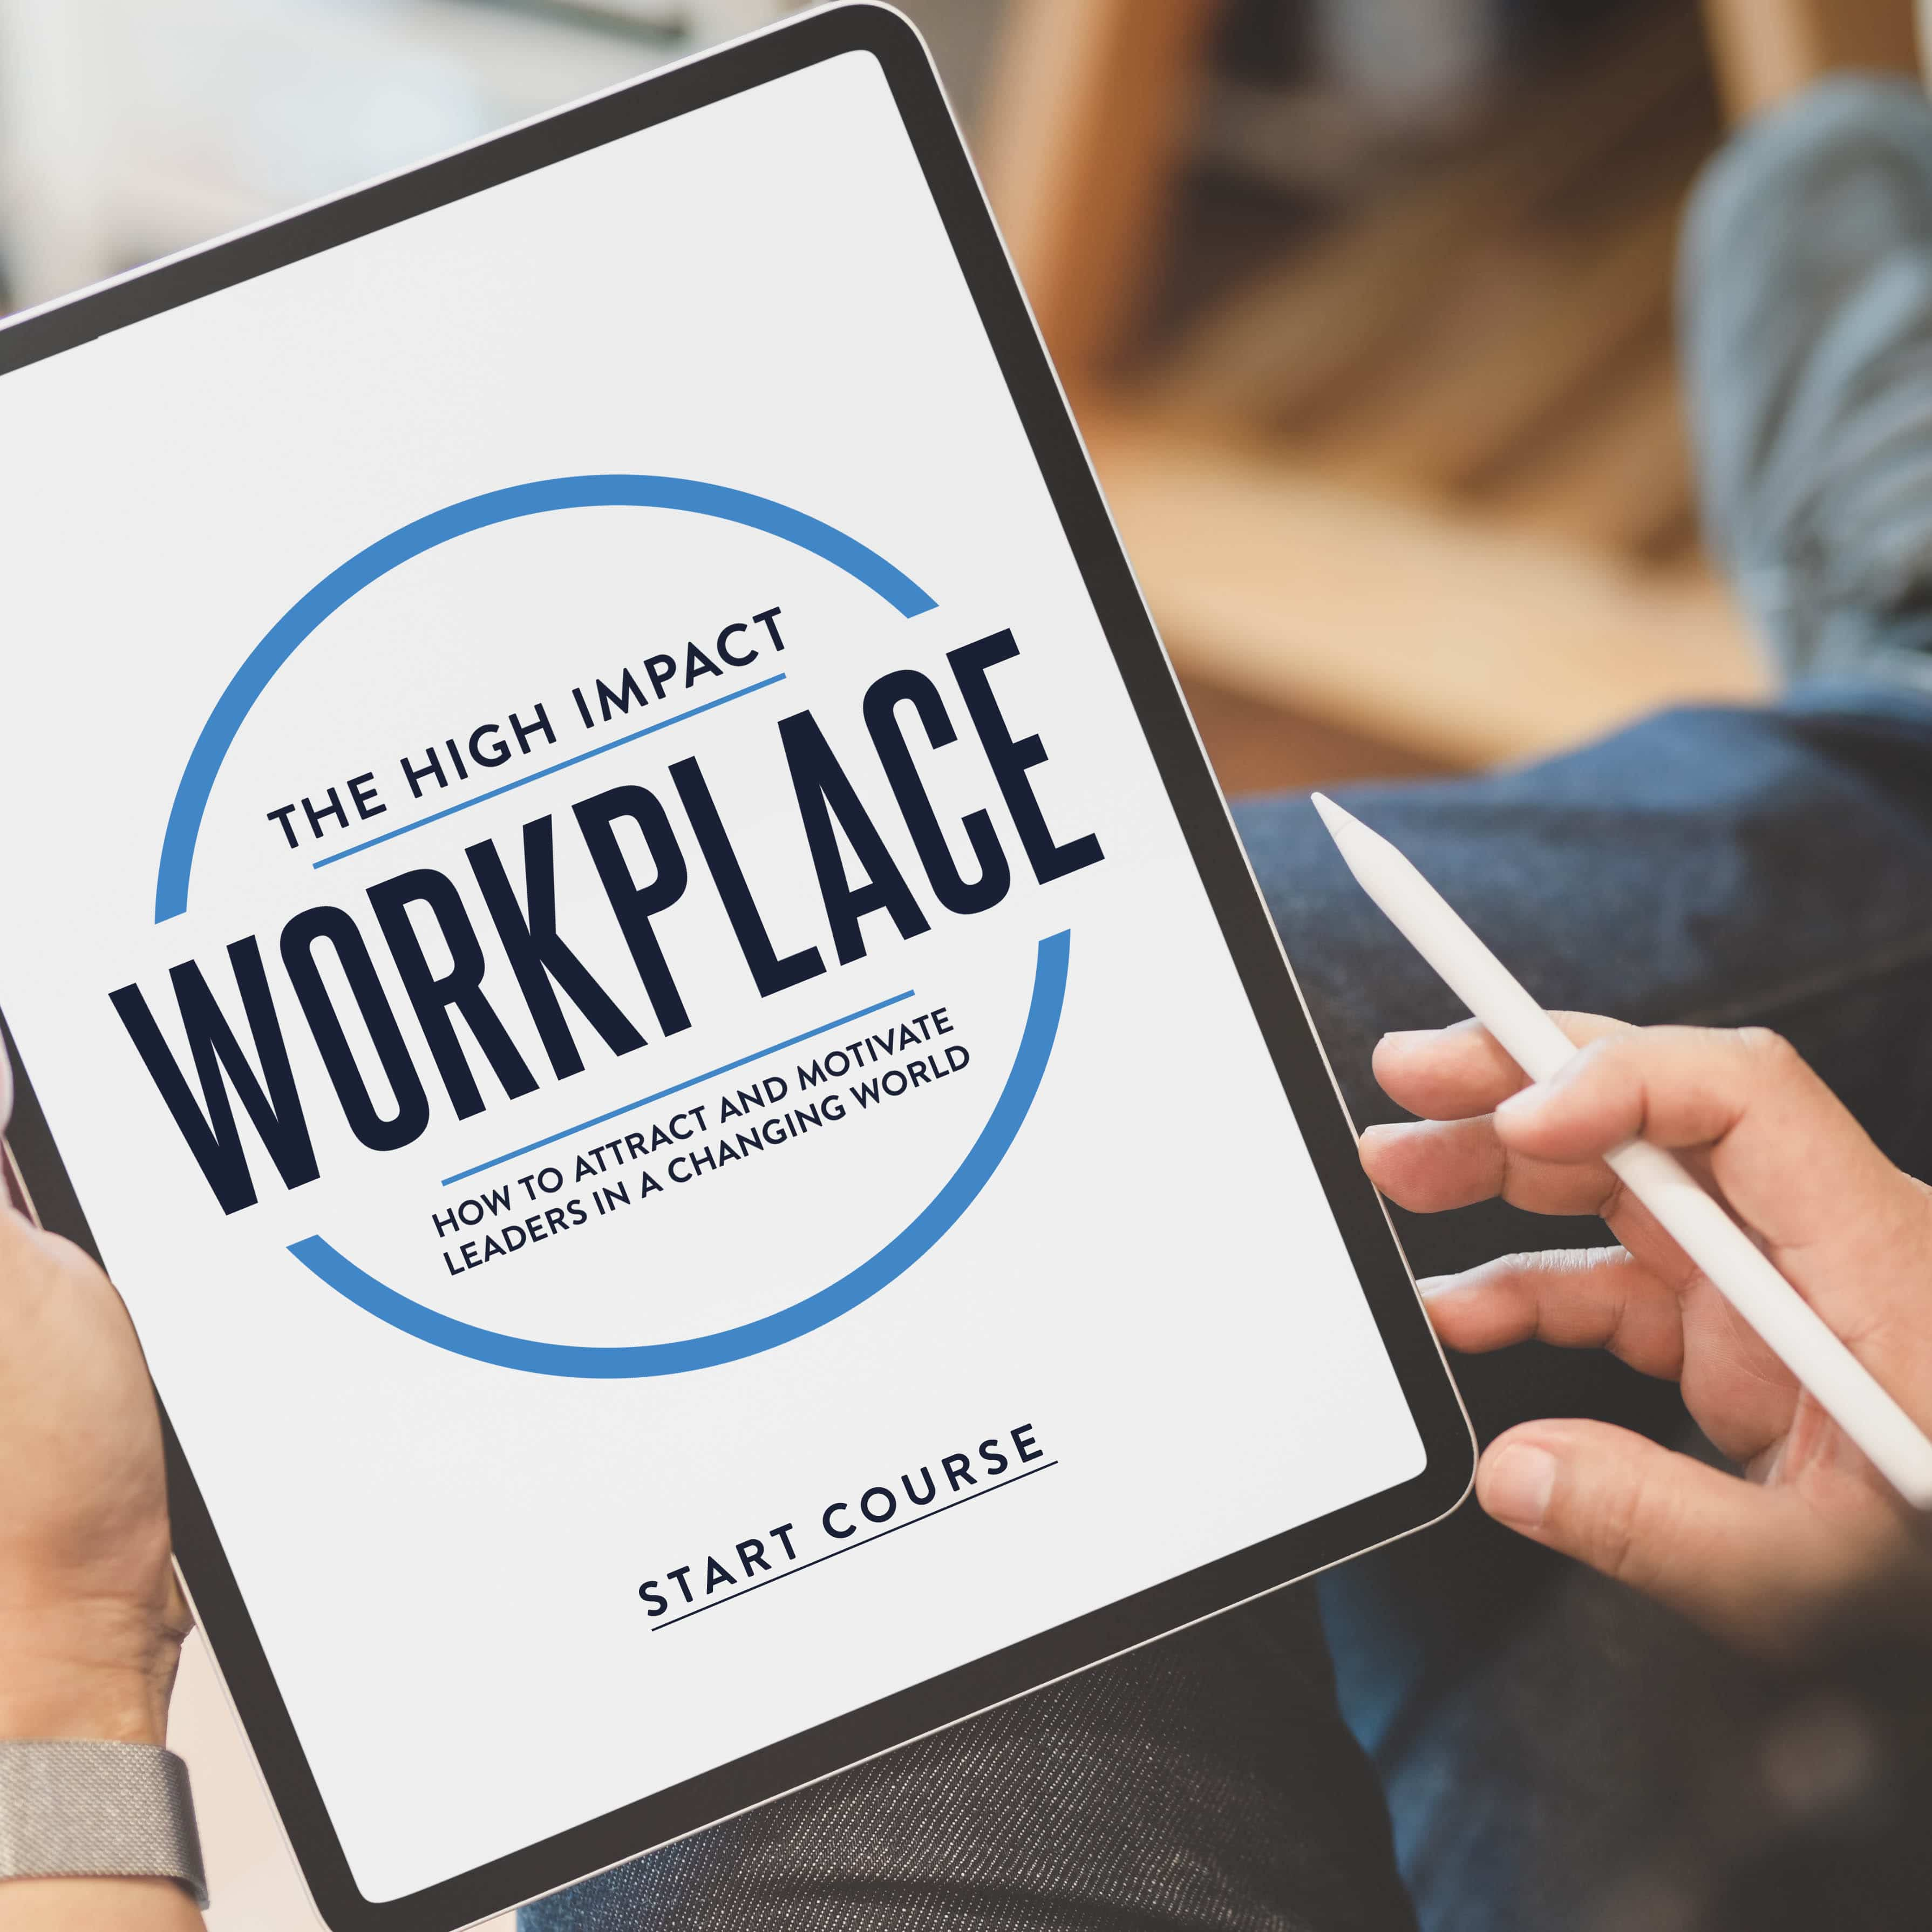 The High Impact Workplace Course